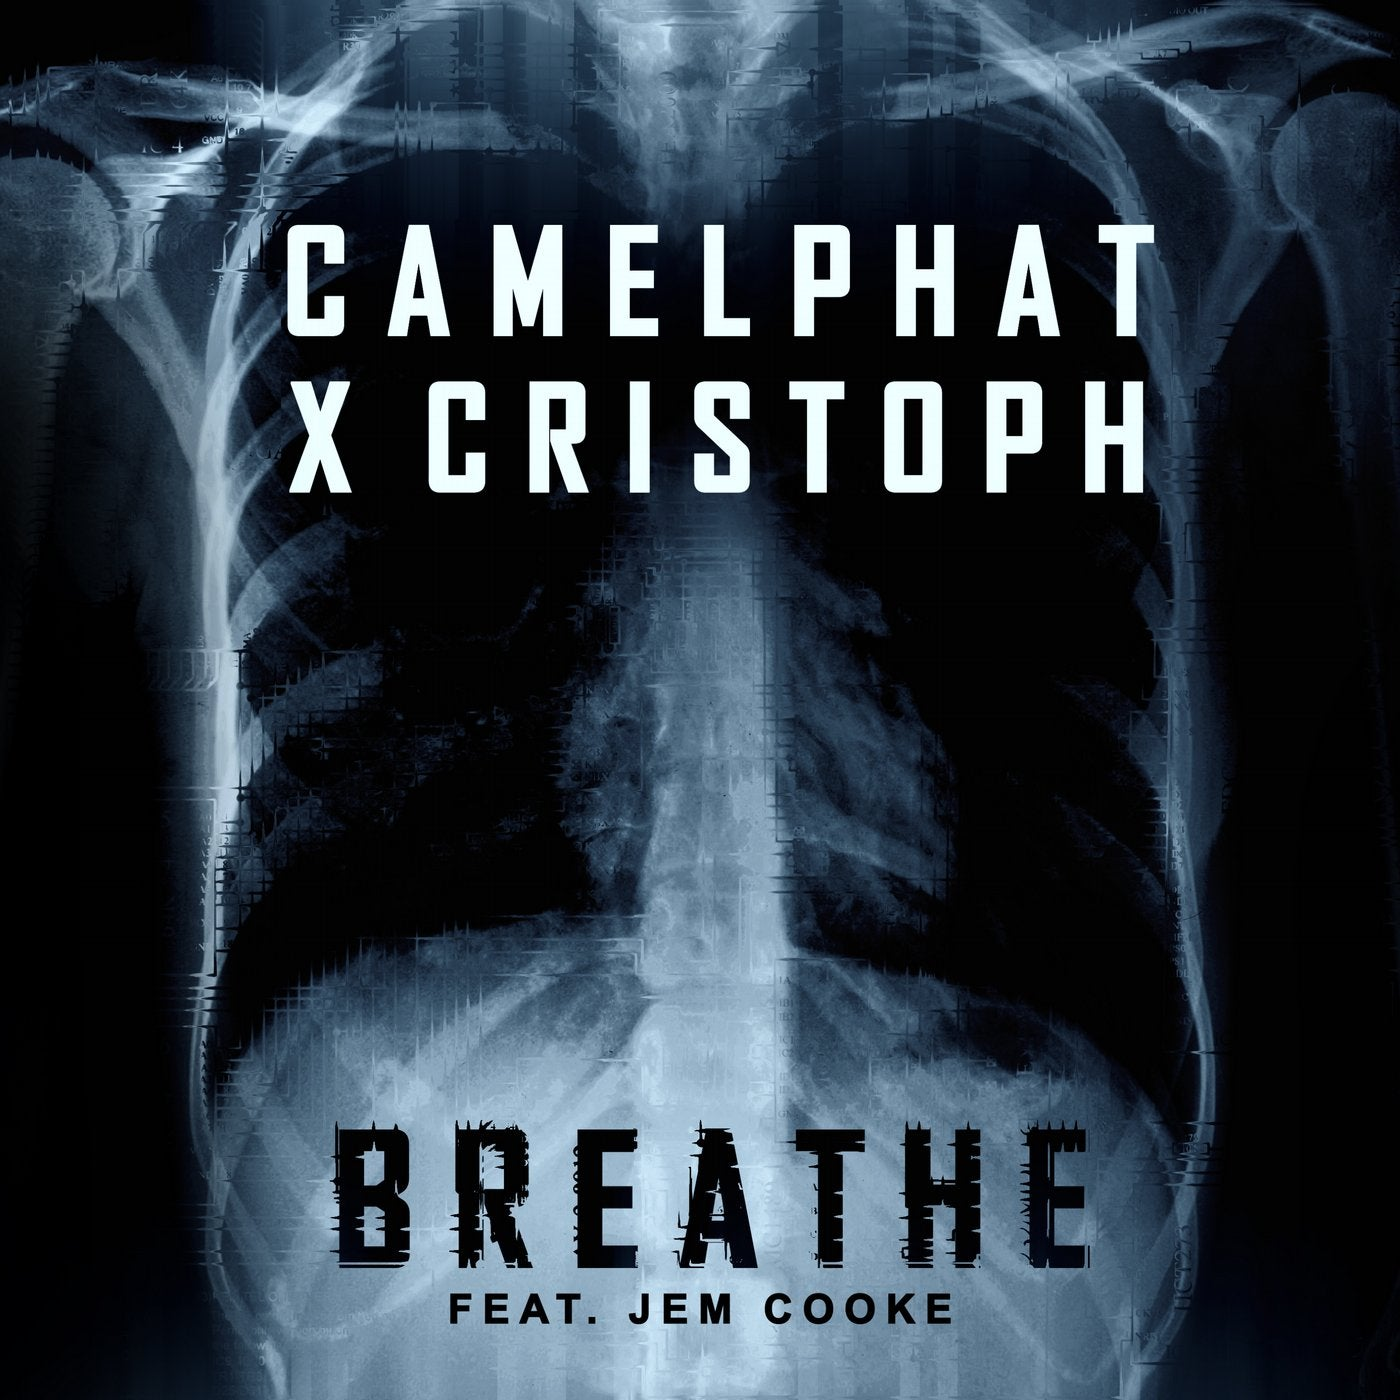 Breathe (Original Mix)